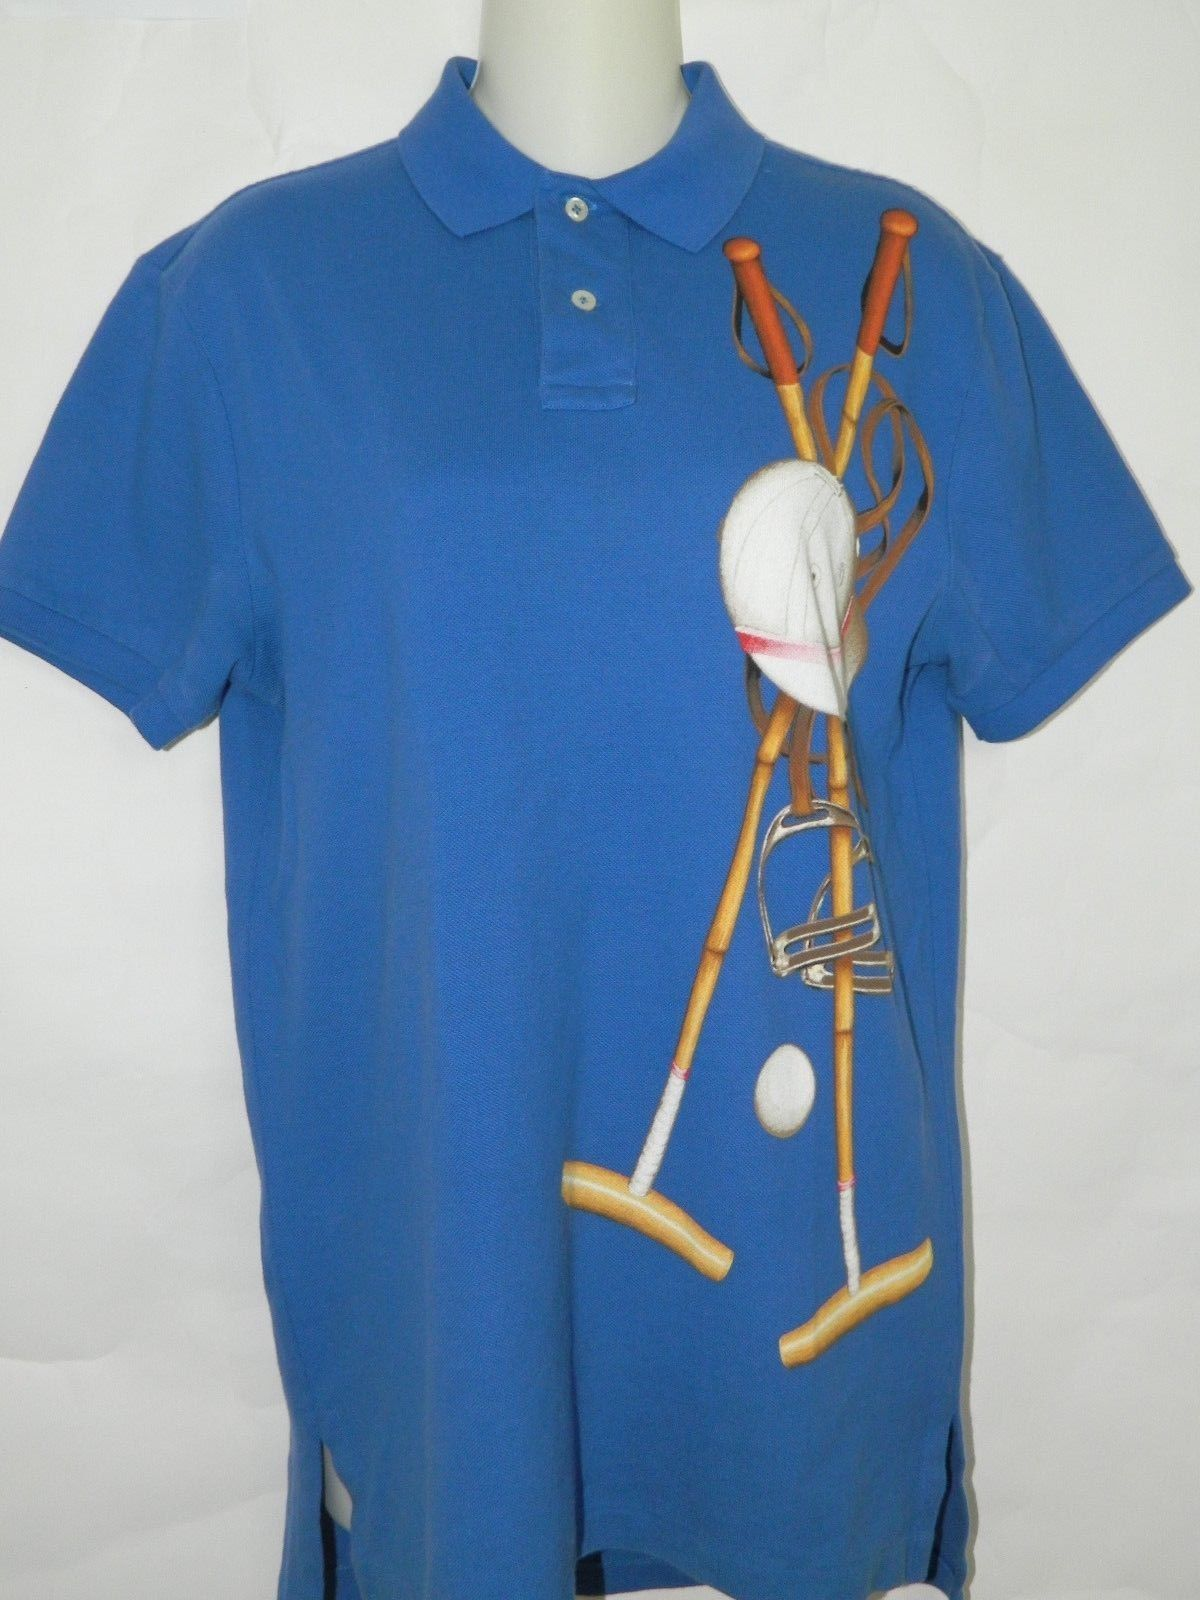 c9235ae13fb239 VTG Polo Ralph Lauren Fit Shirt Blue Equestrian Mallet Helmet Stirrups Sz  Small